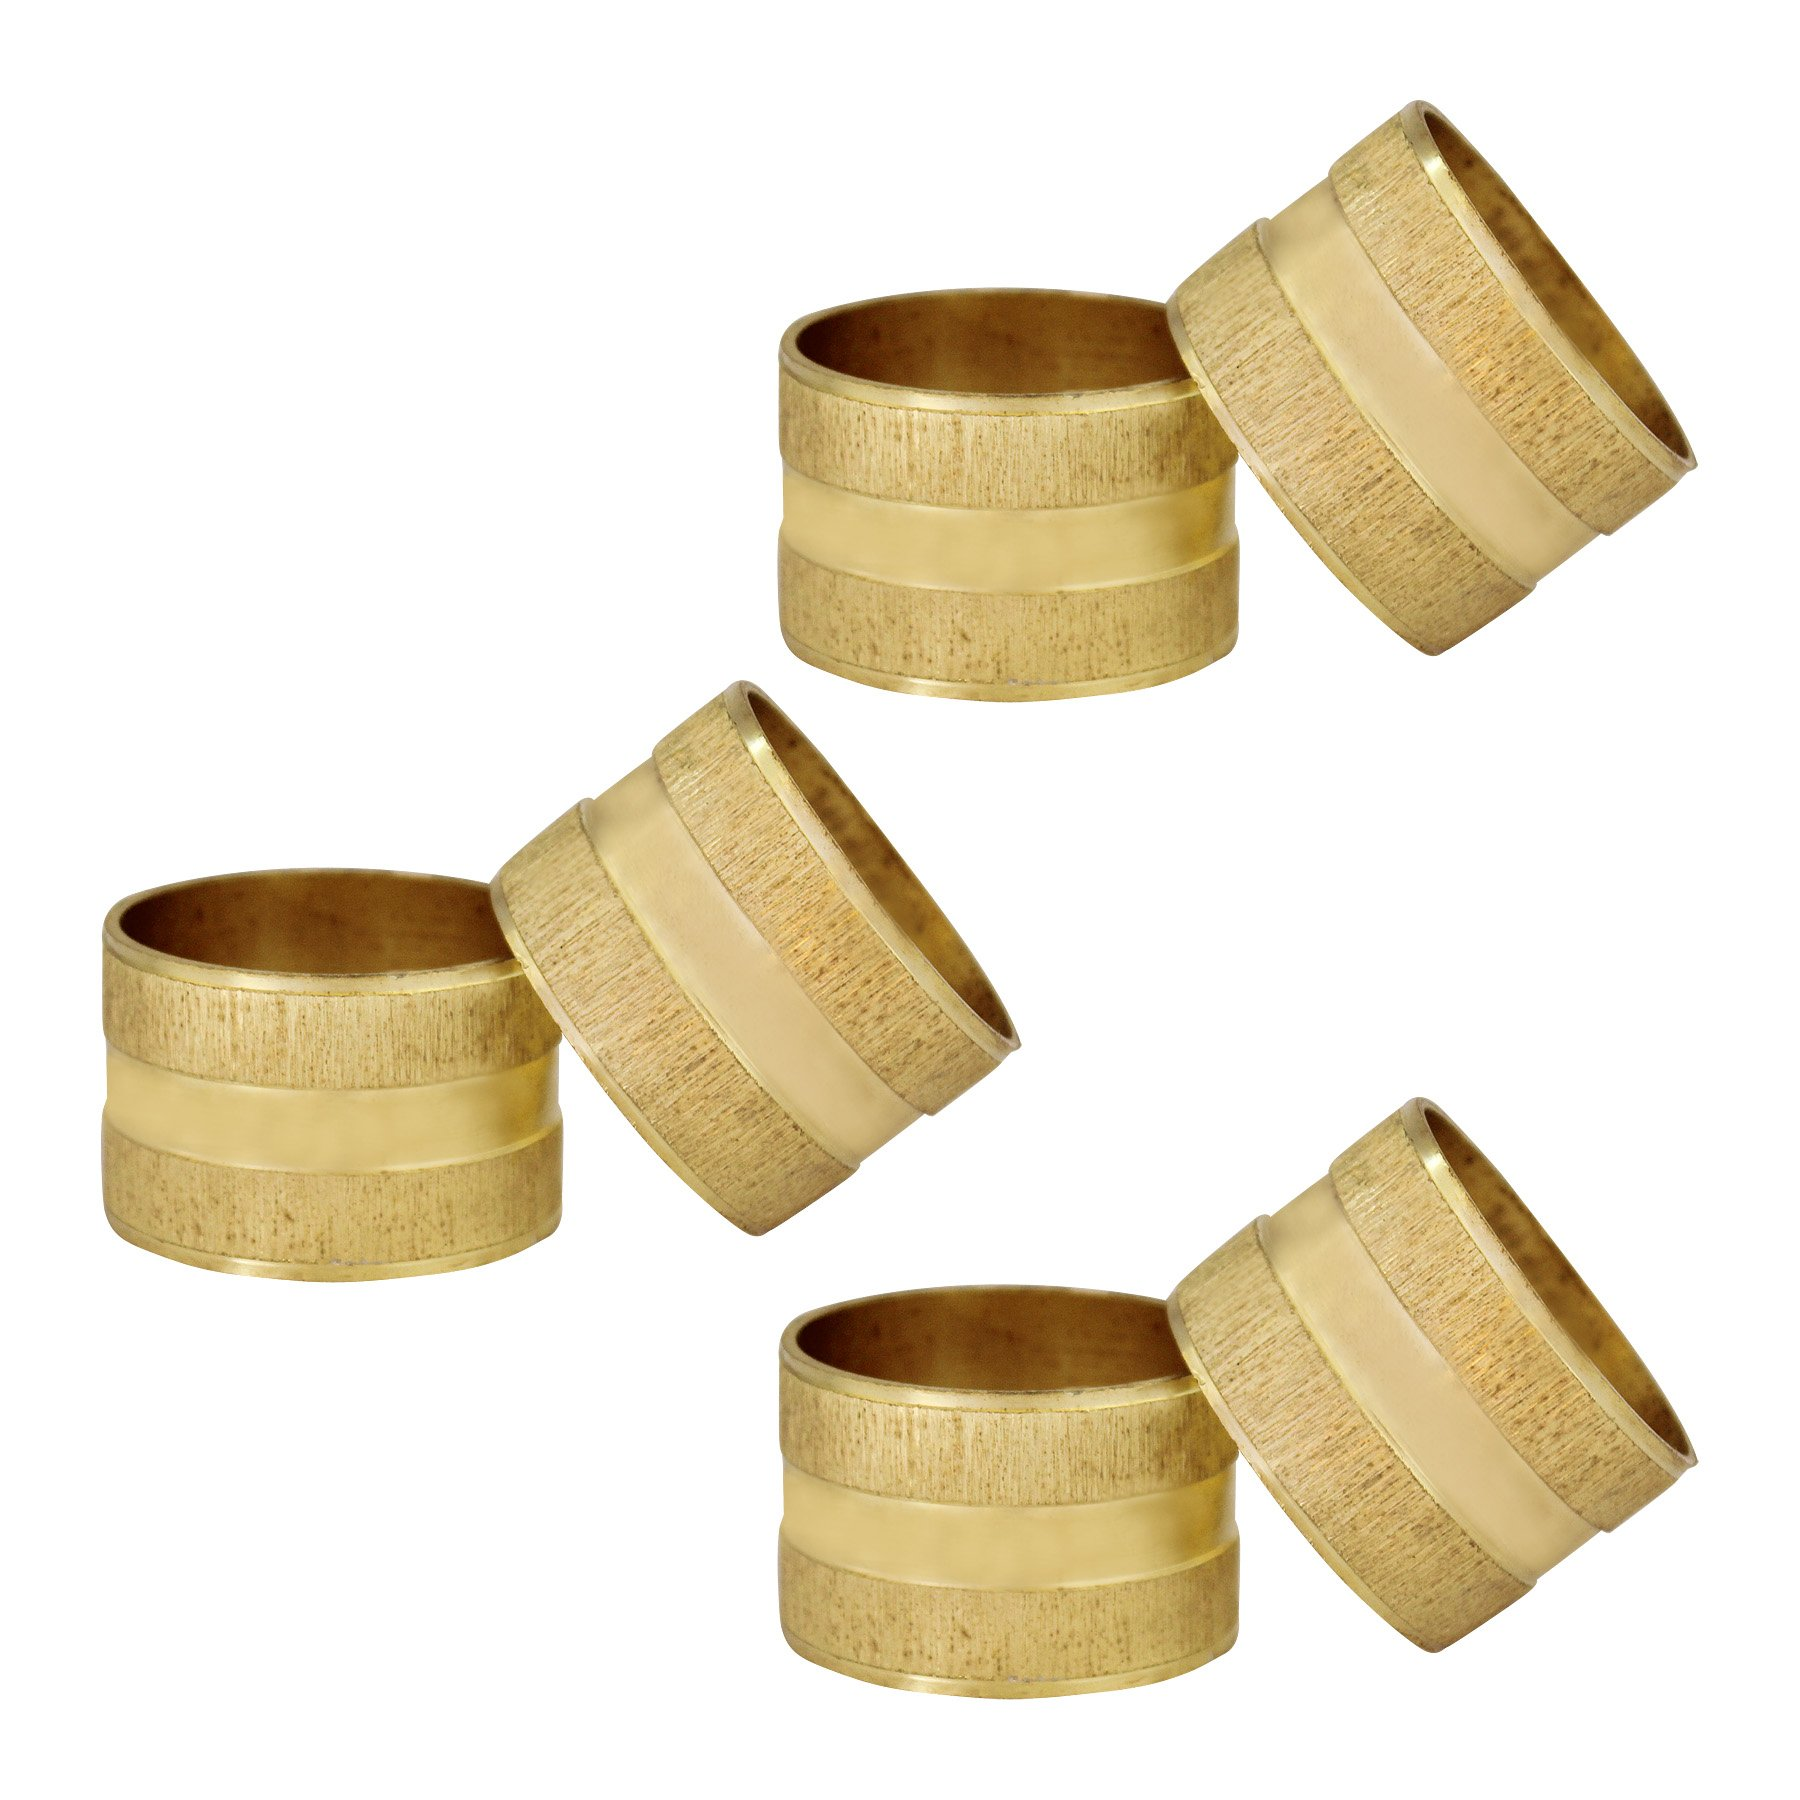 ITOS365 Handmade Gold Round Napkin Rings Holder for Dinning Table Parties Everyday, Set of 6